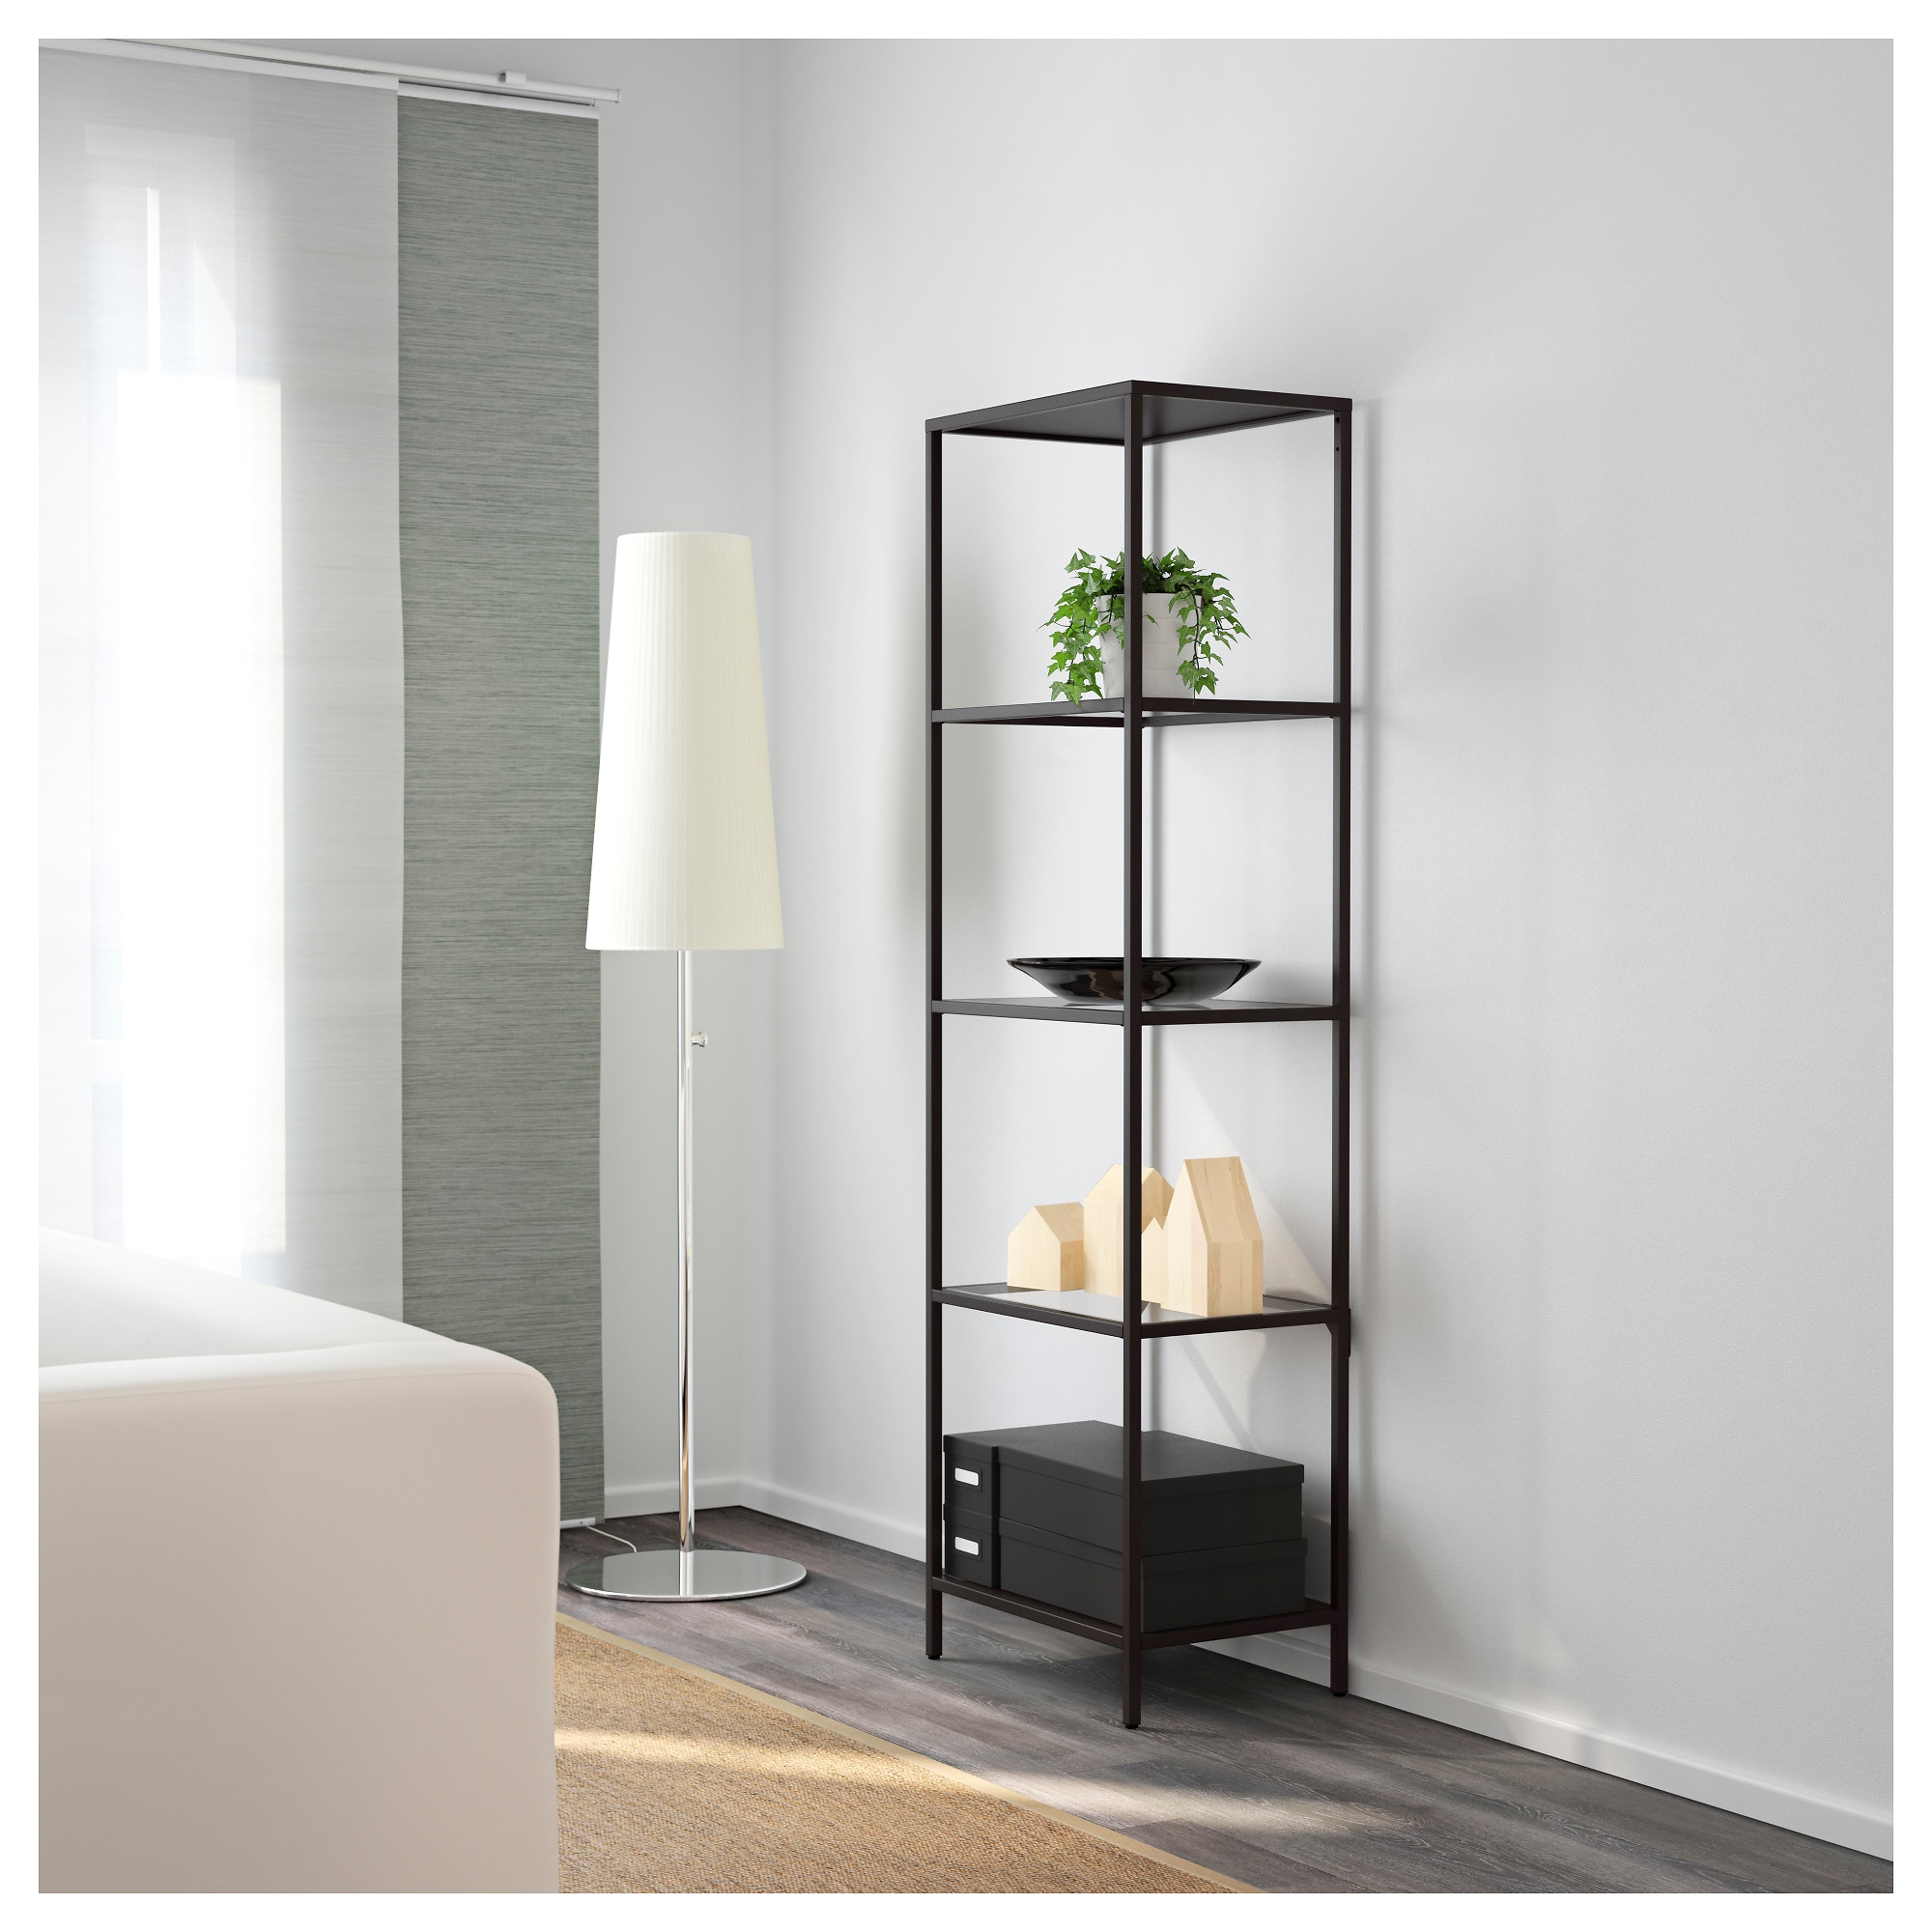 VITTSJÖ Shelf unit - white/glass - IKEA